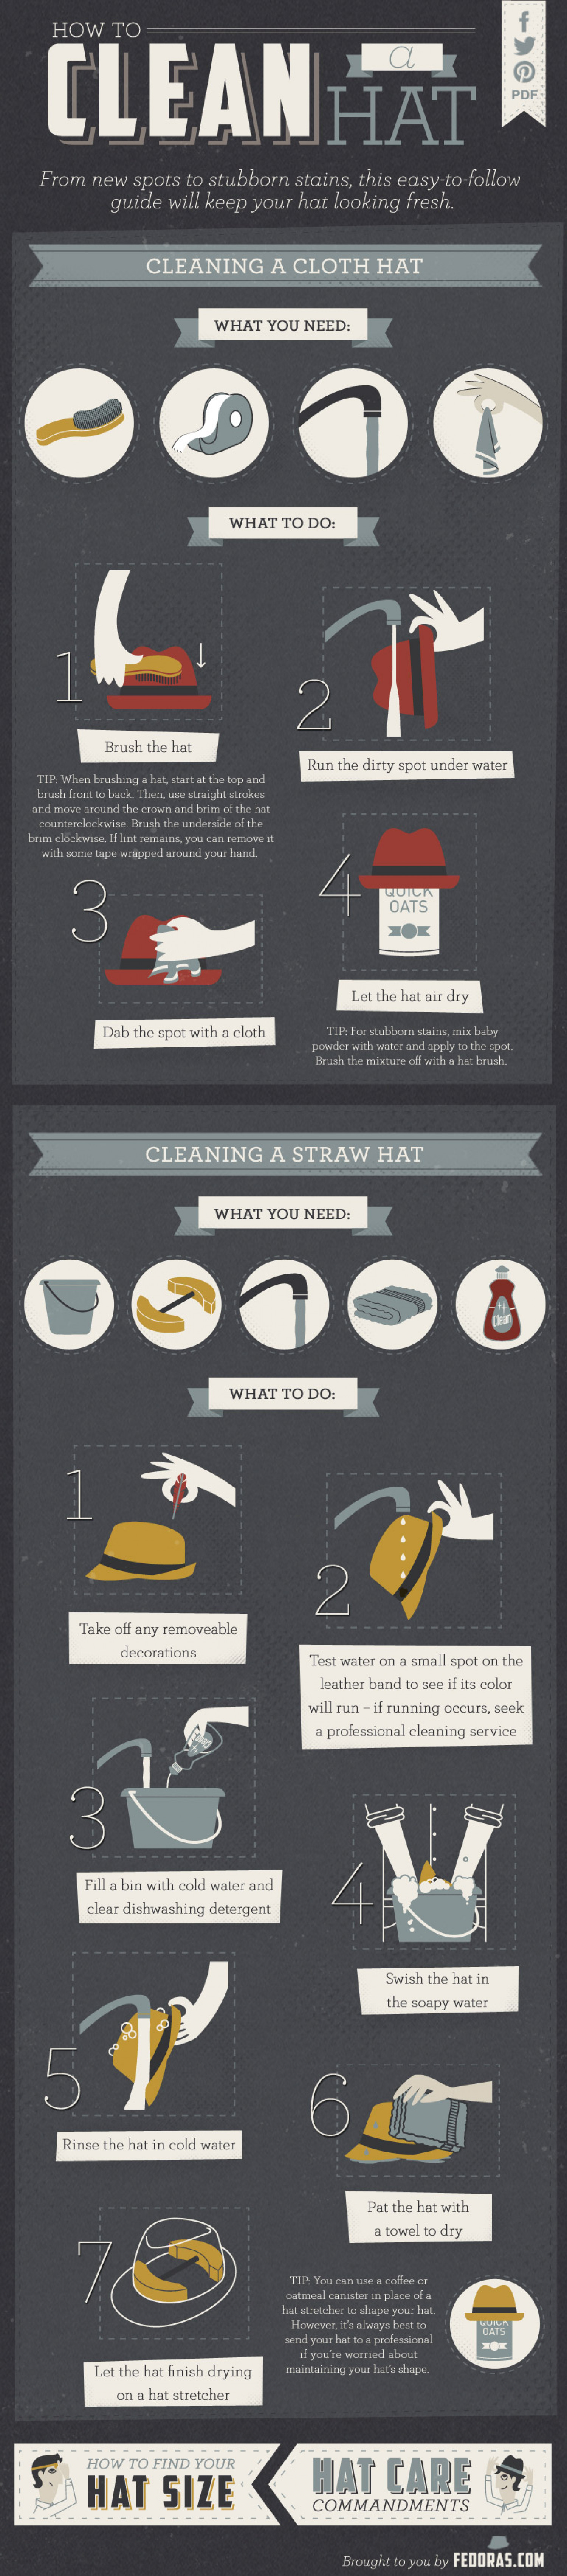 How to Clean a Hat Infographic